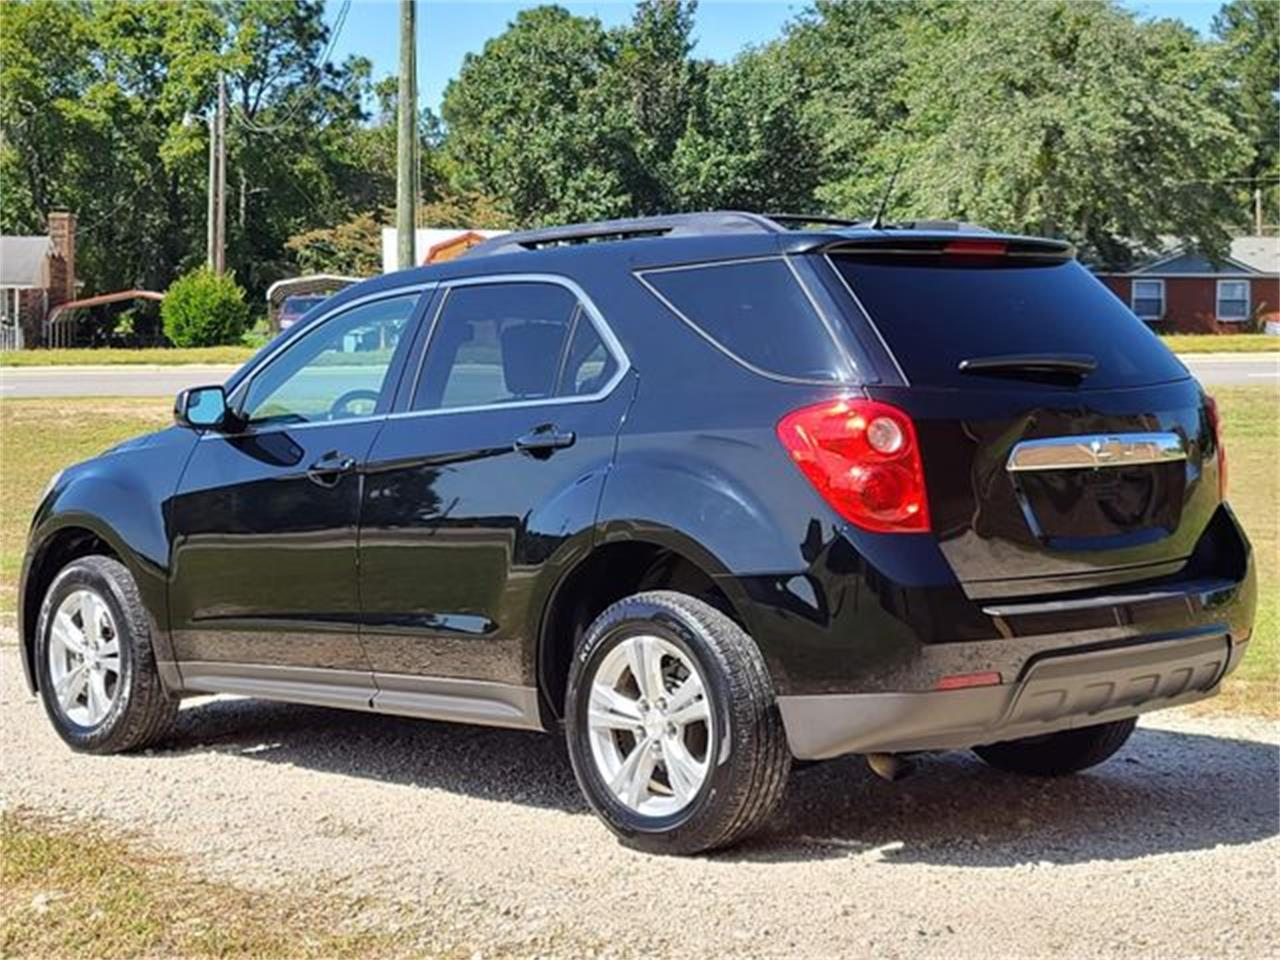 2013 Chevrolet Equinox (CC-1388908) for sale in Hope Mills, North Carolina